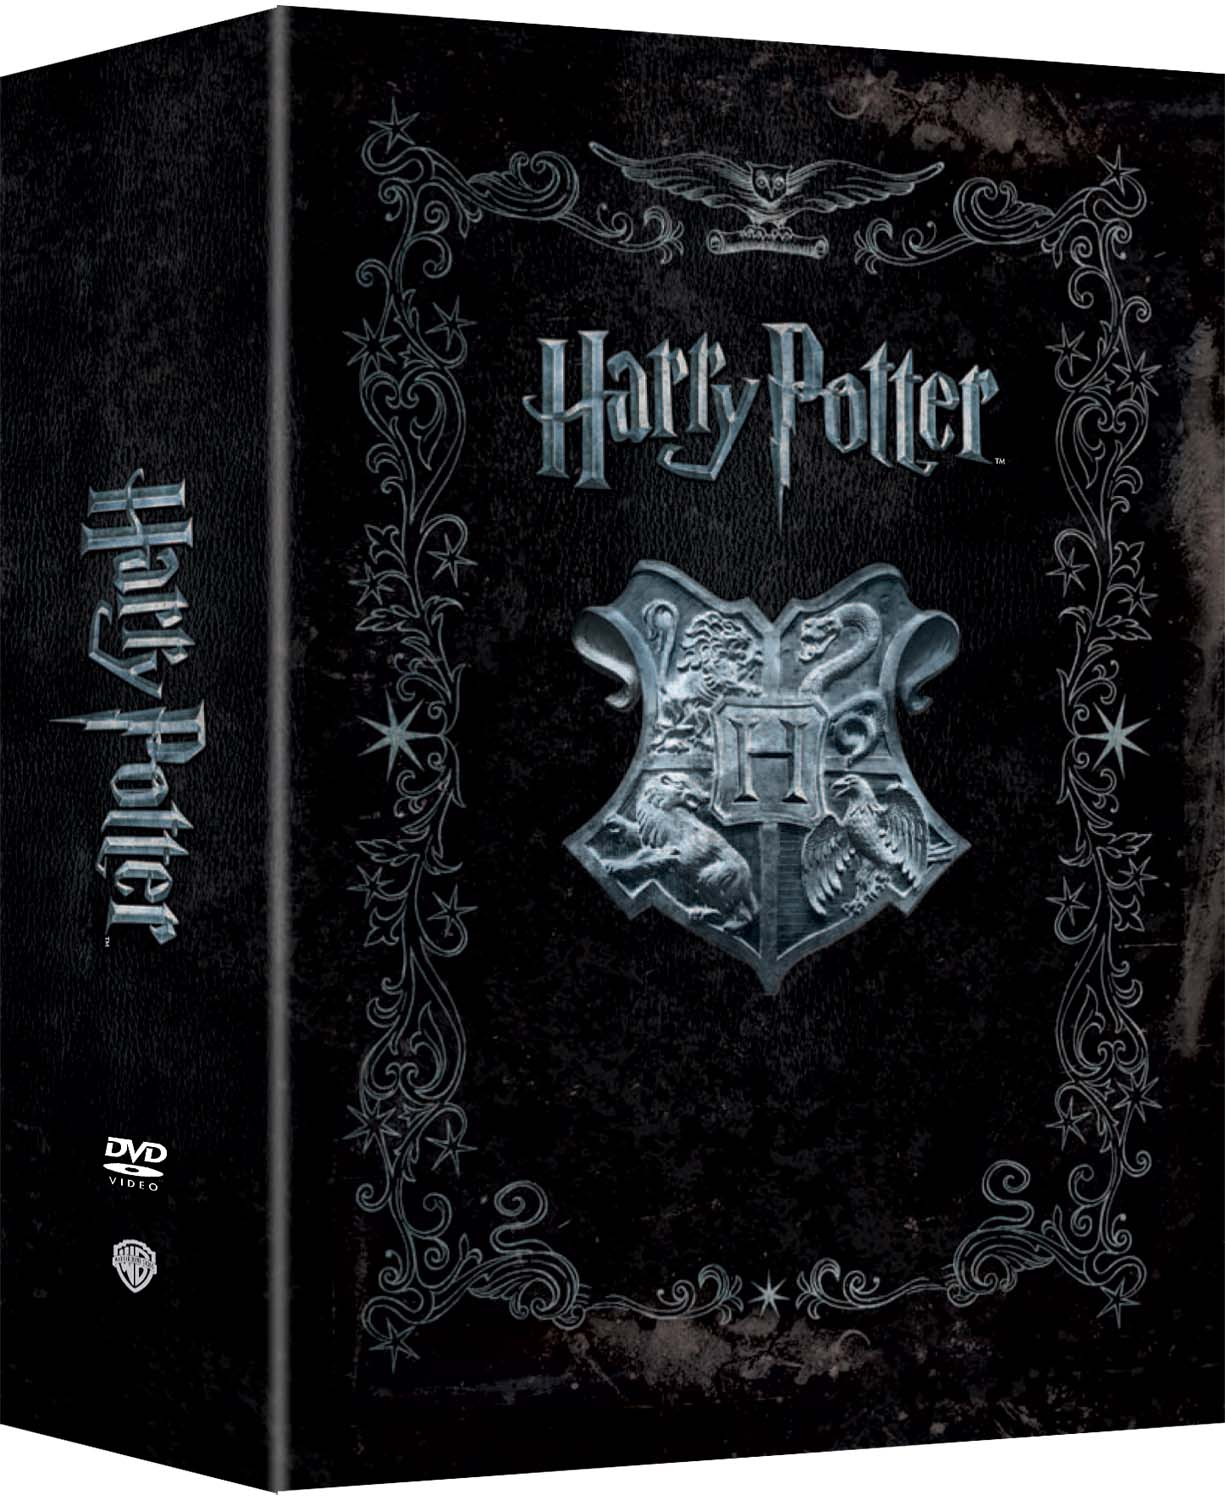 COF.HARRY POTTER COLLECTION (LIMITED EDITION) (14 DVD) (DVD)